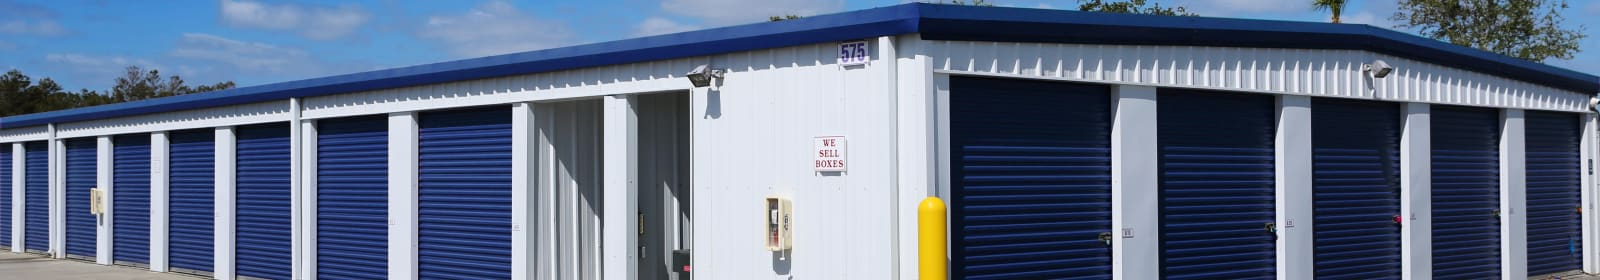 Features we offer at Midgard Self Storage in Melbourne, Florida